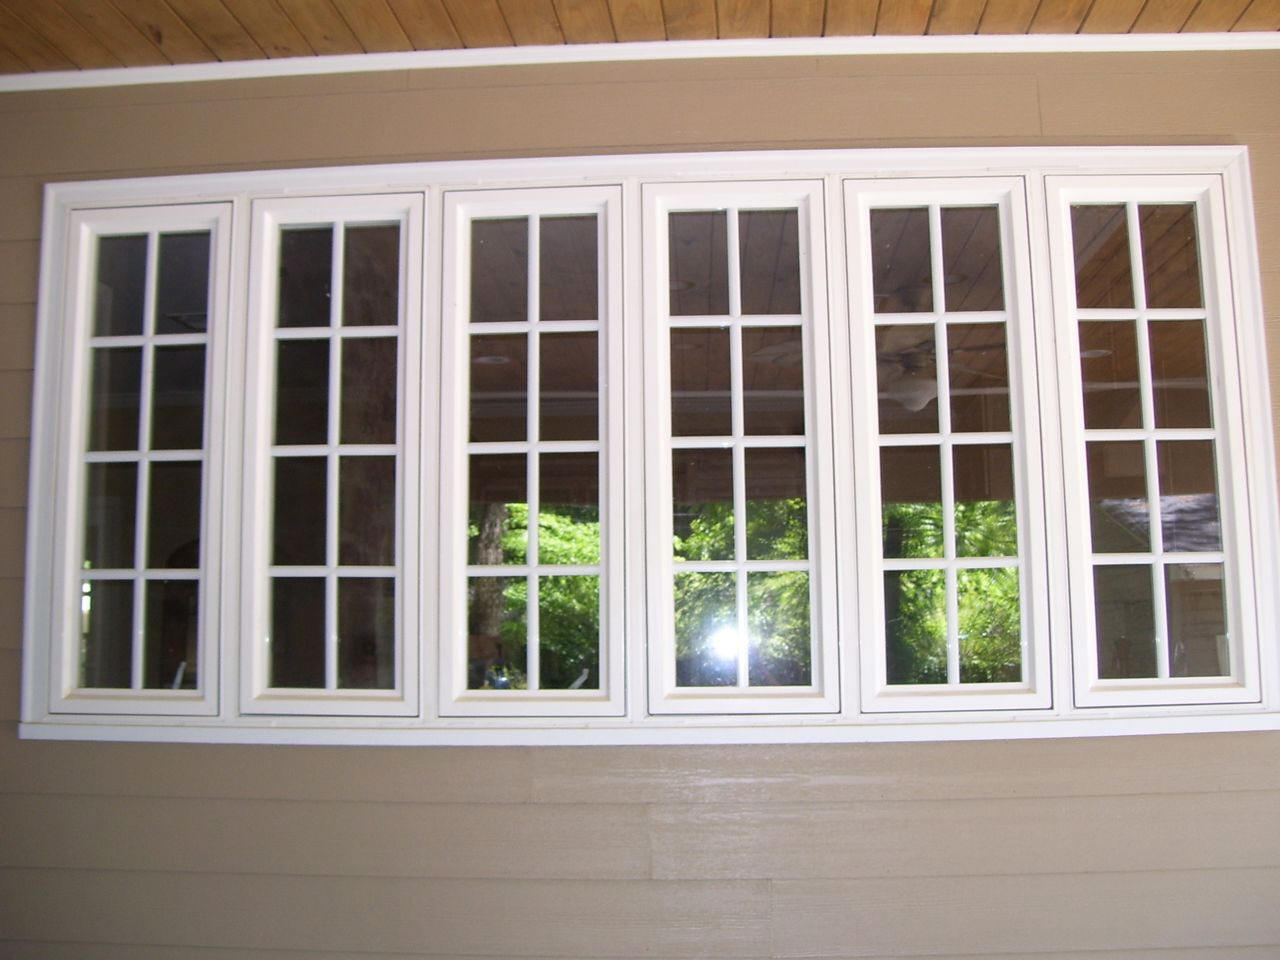 Modular Vinyl House Window Styles Pictures House Style Design : New House inside New House Window Design